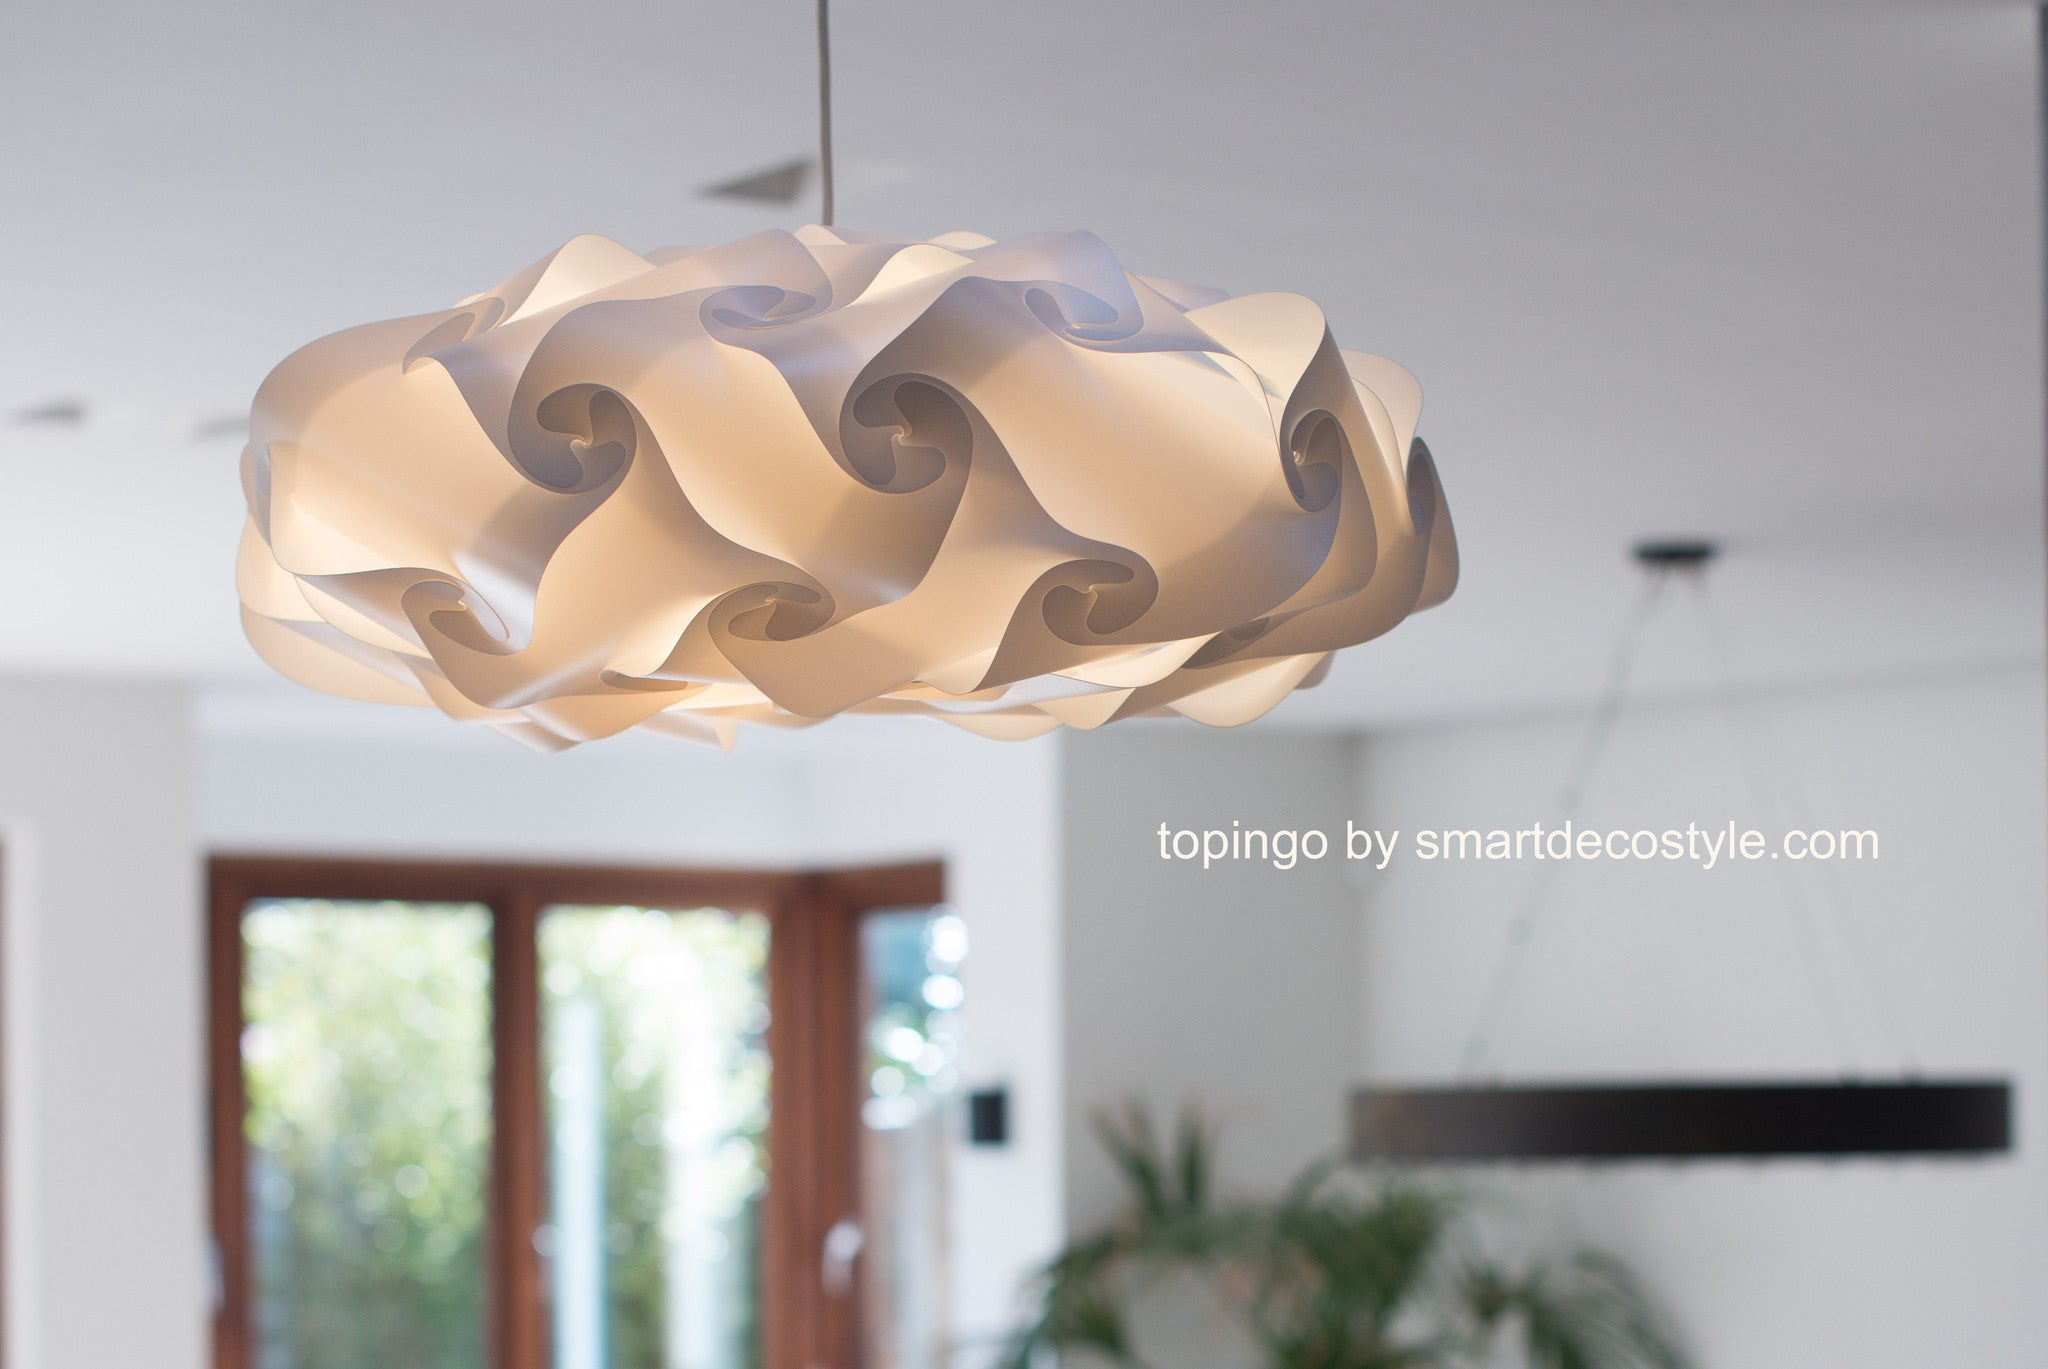 Smarty Lamps Topingo Light Shade  Smart Deco Homeware Lighting and Art by Jacqueline hammond